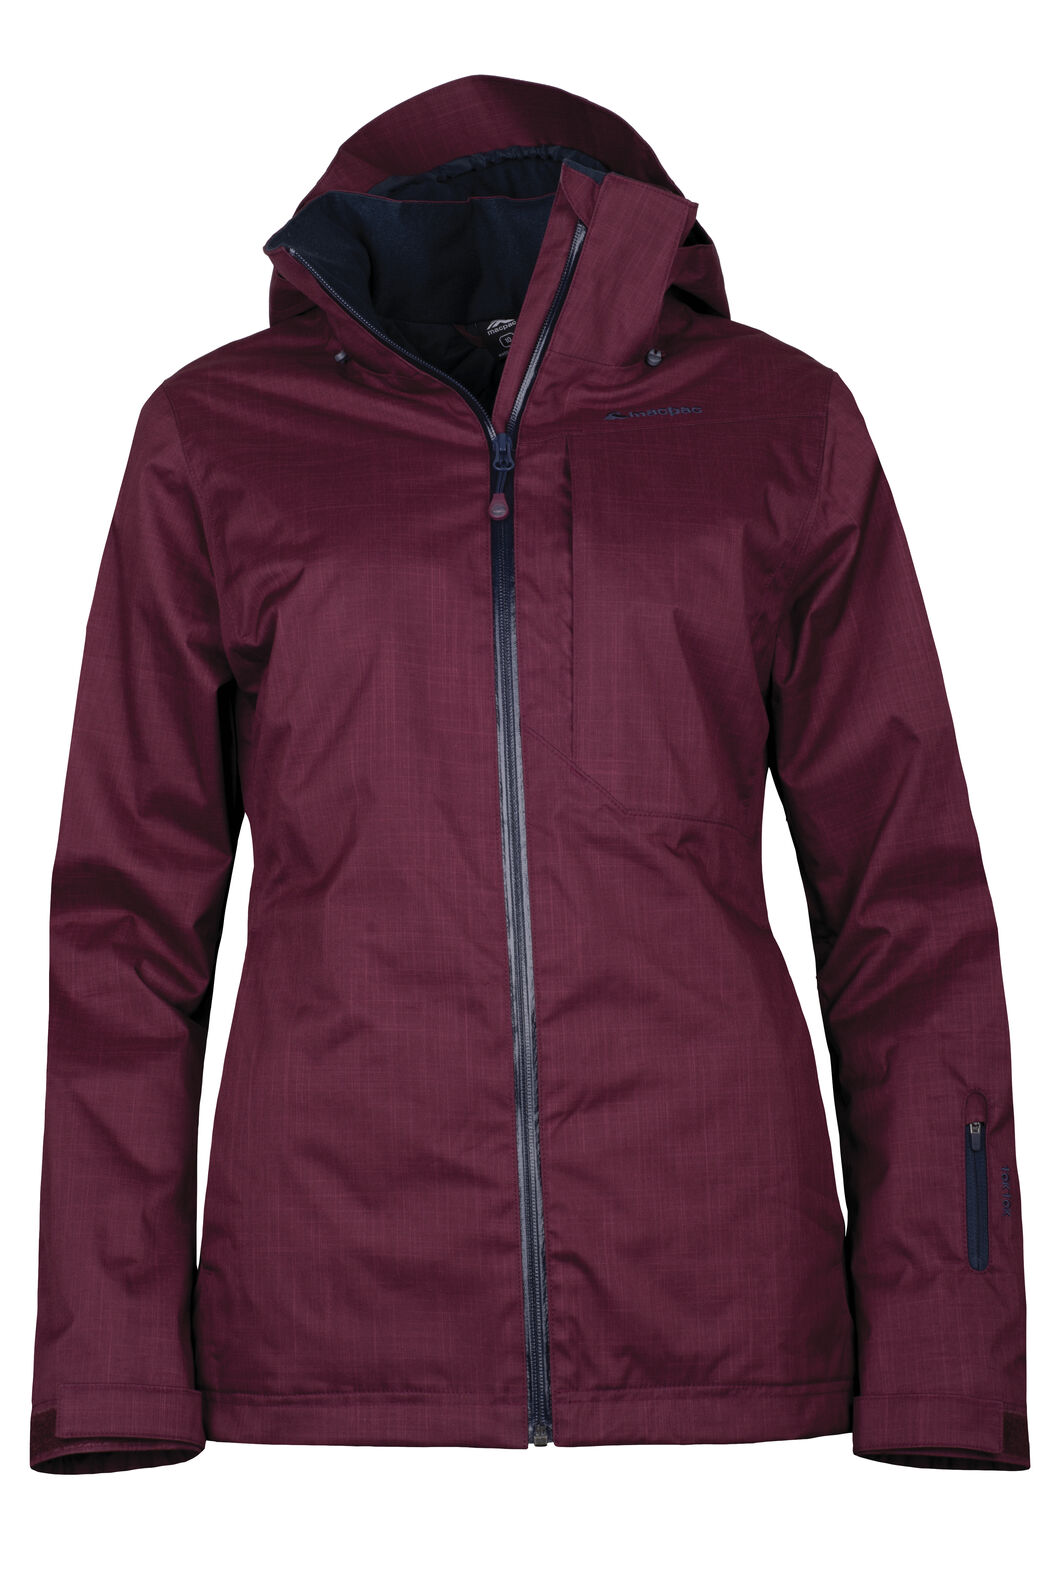 Powder Ski Jacket - Women's, Windsor Wine, hi-res